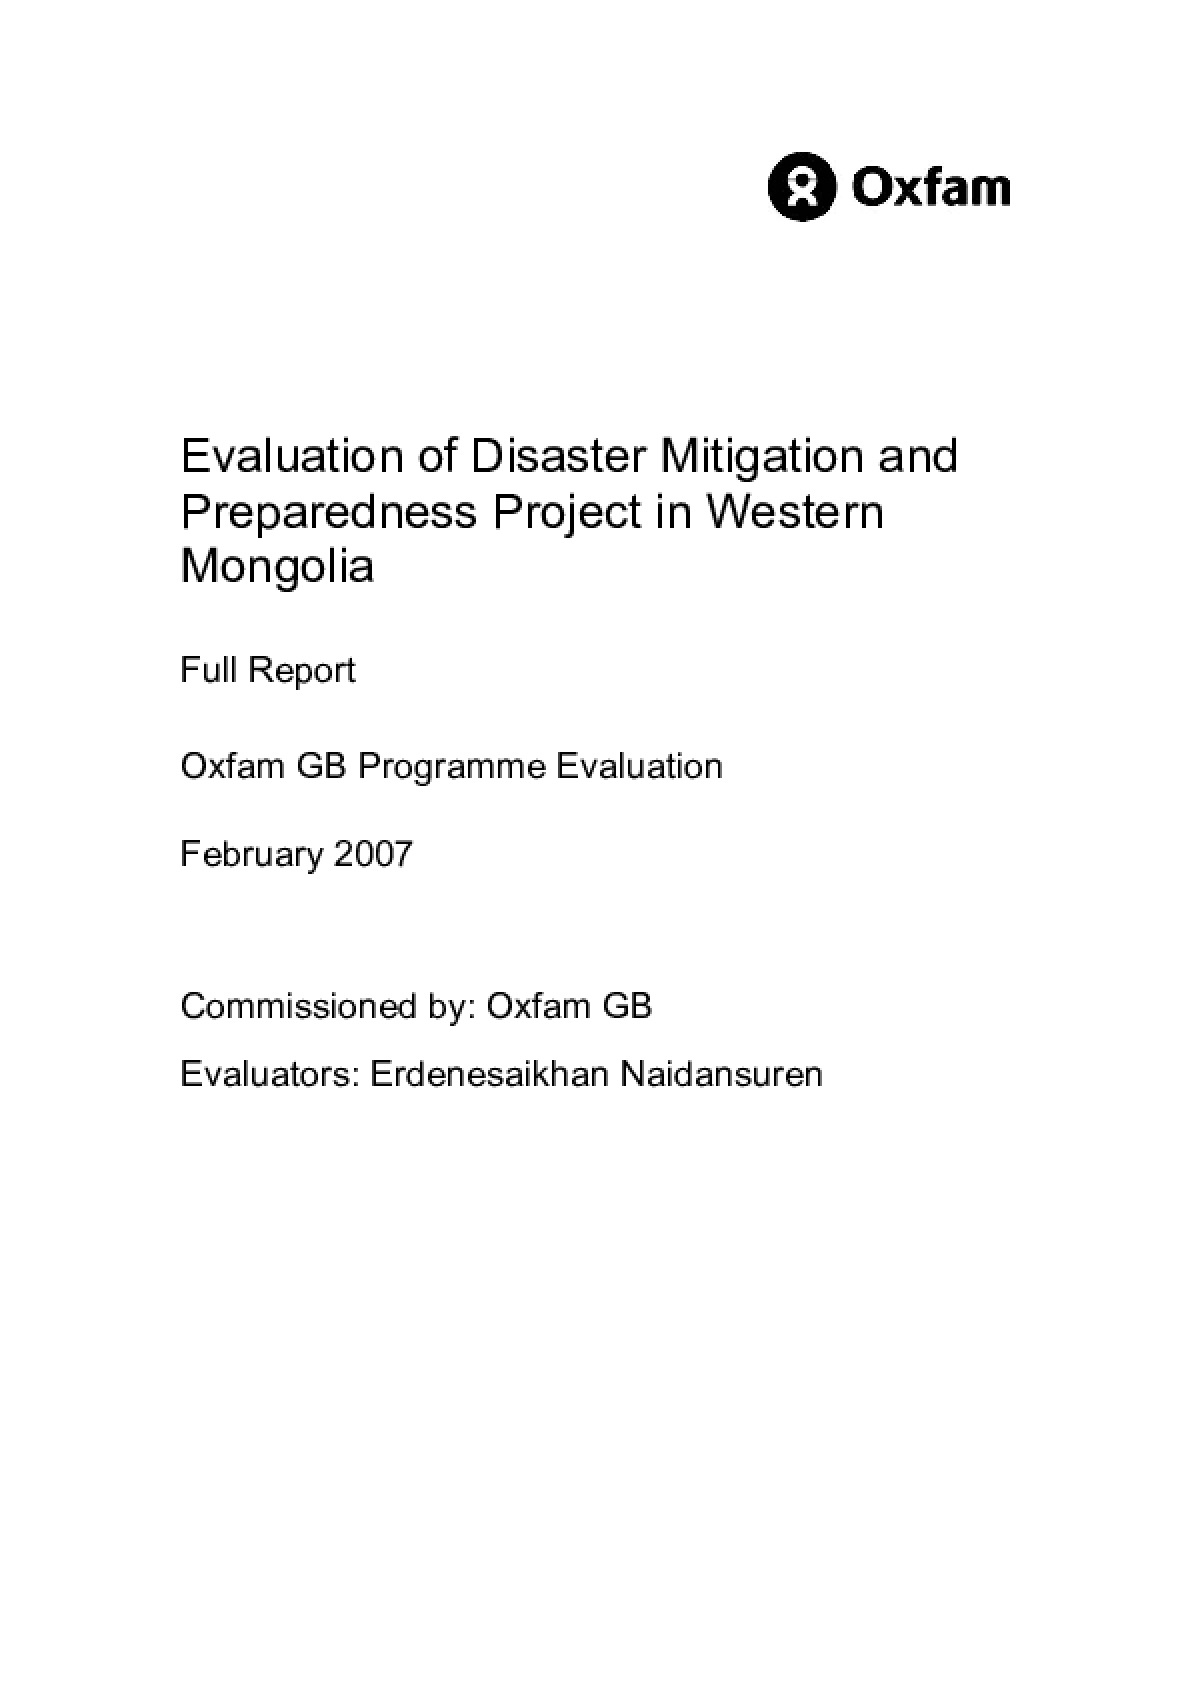 Evaluation of Disaster Mitigation and Preparedness Project in Western Mongolia